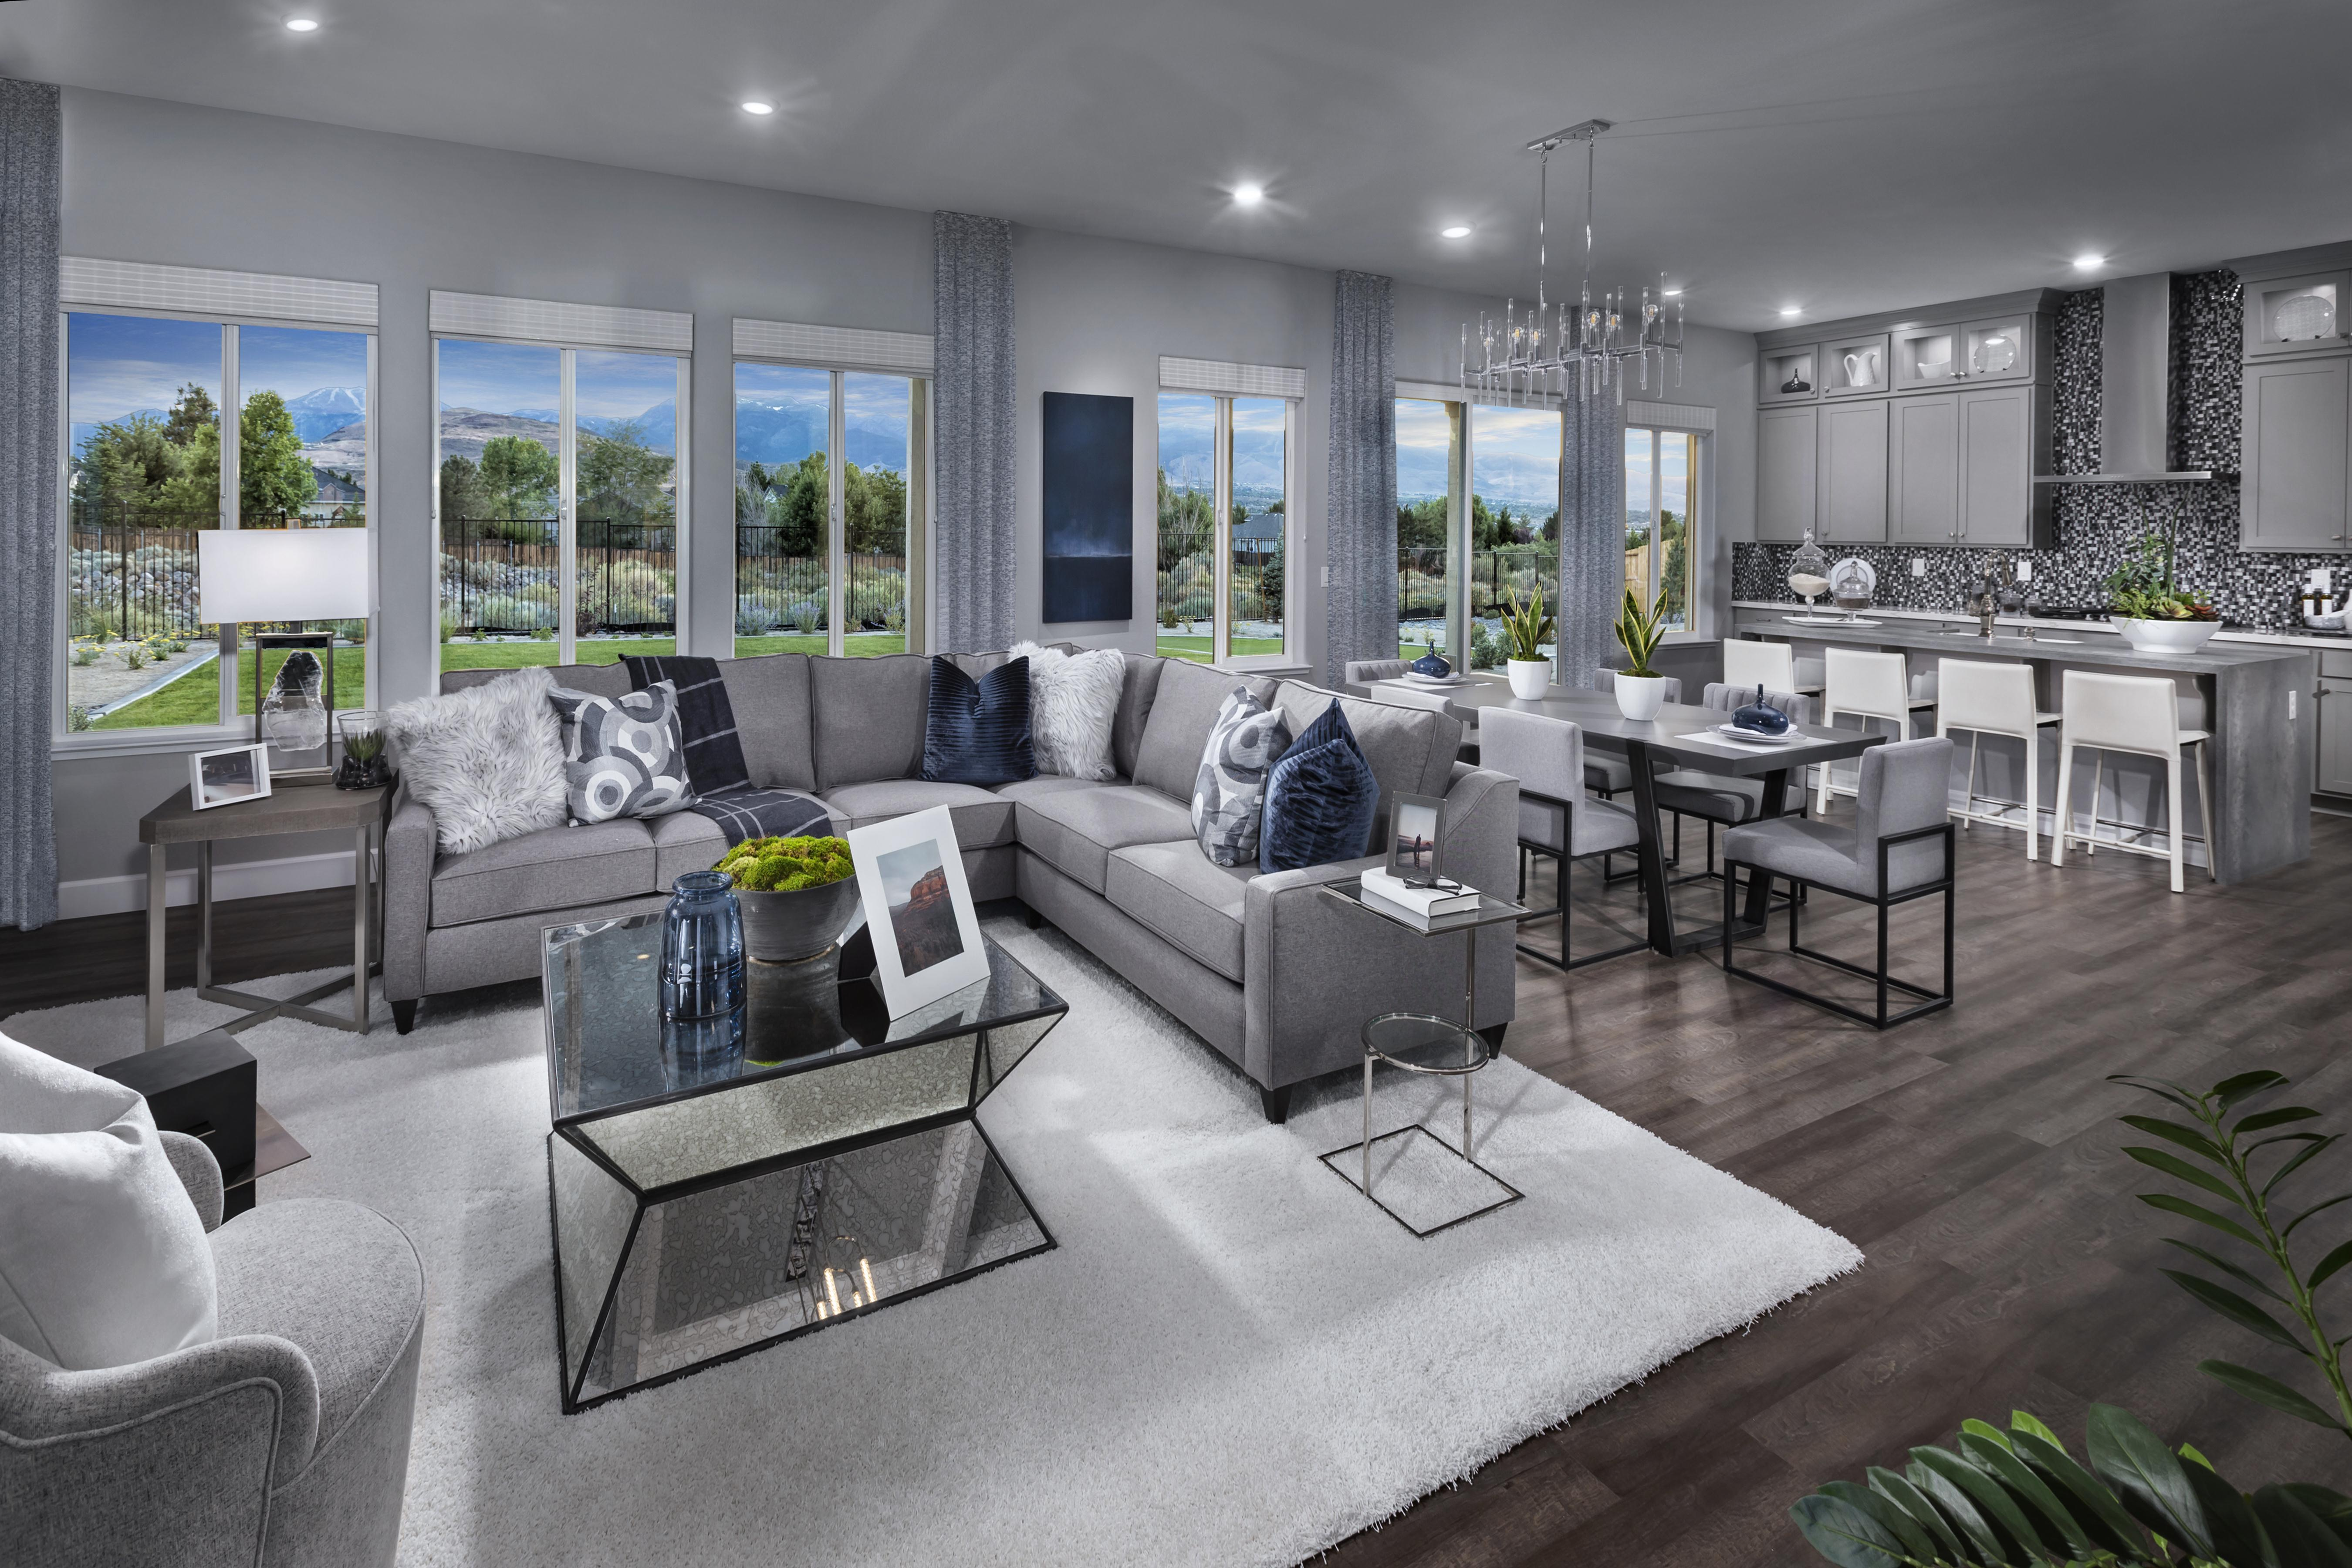 Living Area featured in the Plan 2 By Tim Lewis Communities in Reno, NV